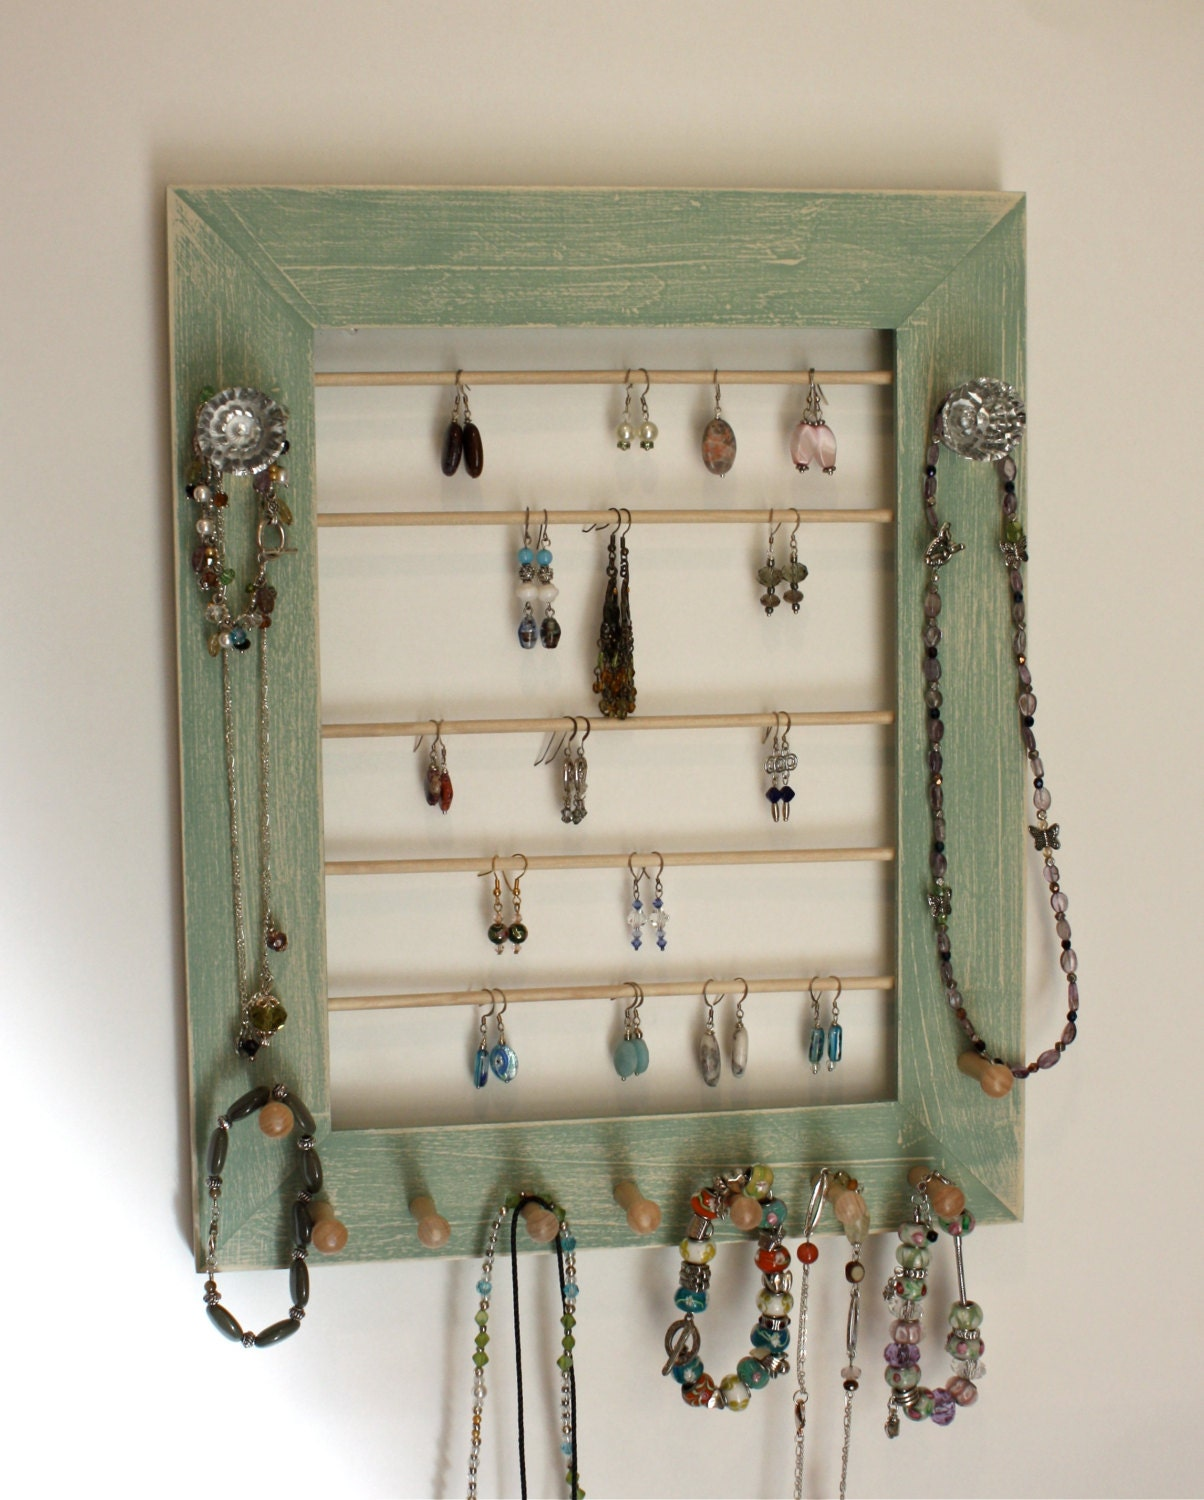 Jewelry Organizer Wall Jewelry Holder And Organizers On: Wall Mount Jewelry Holder Organizer Rustic Style By